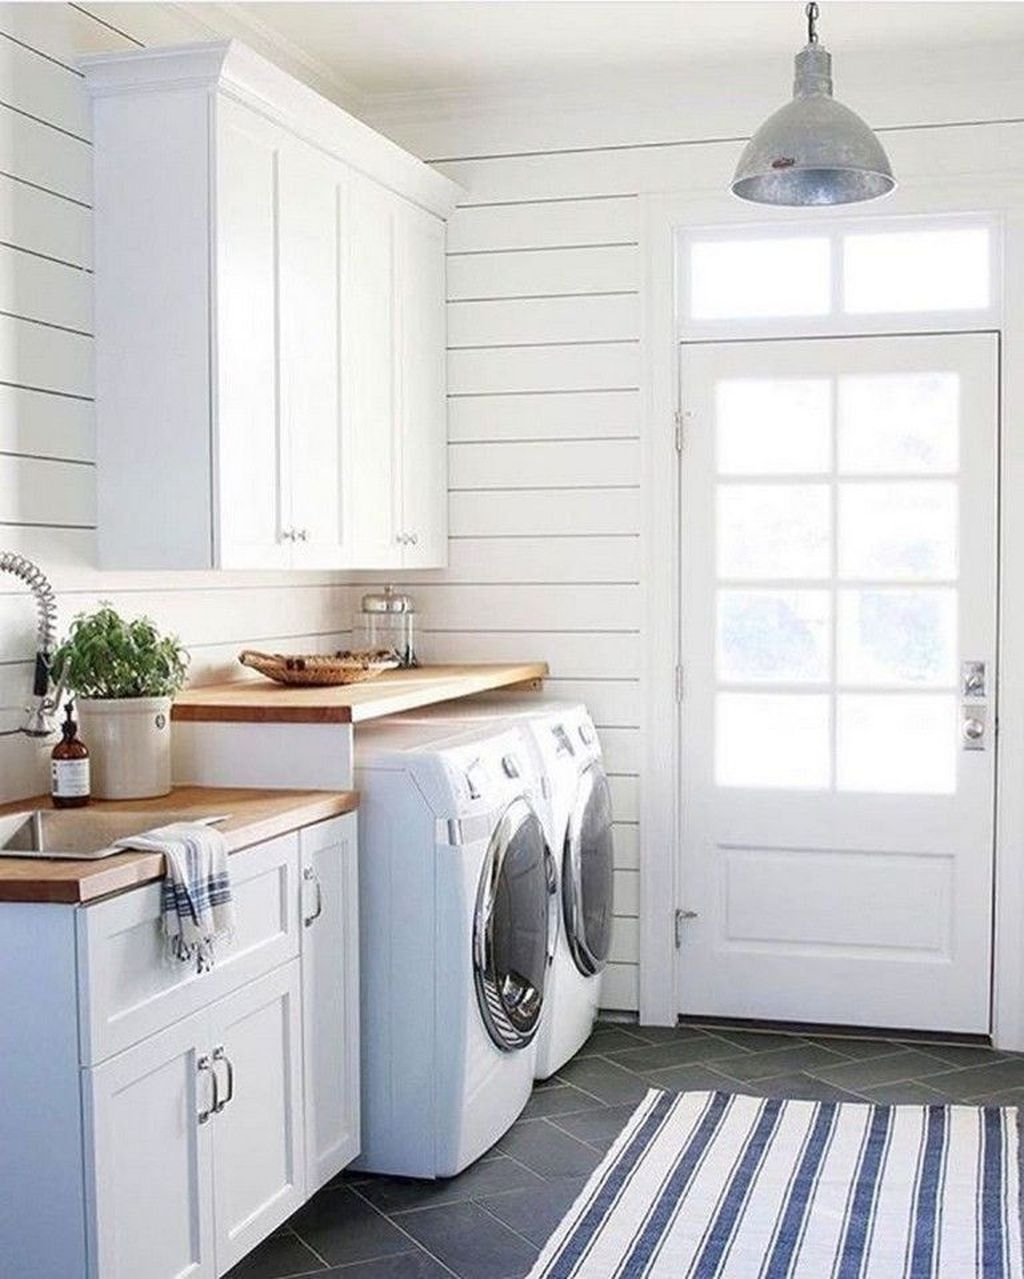 Relaxing Laundry Room Layout Ideas12